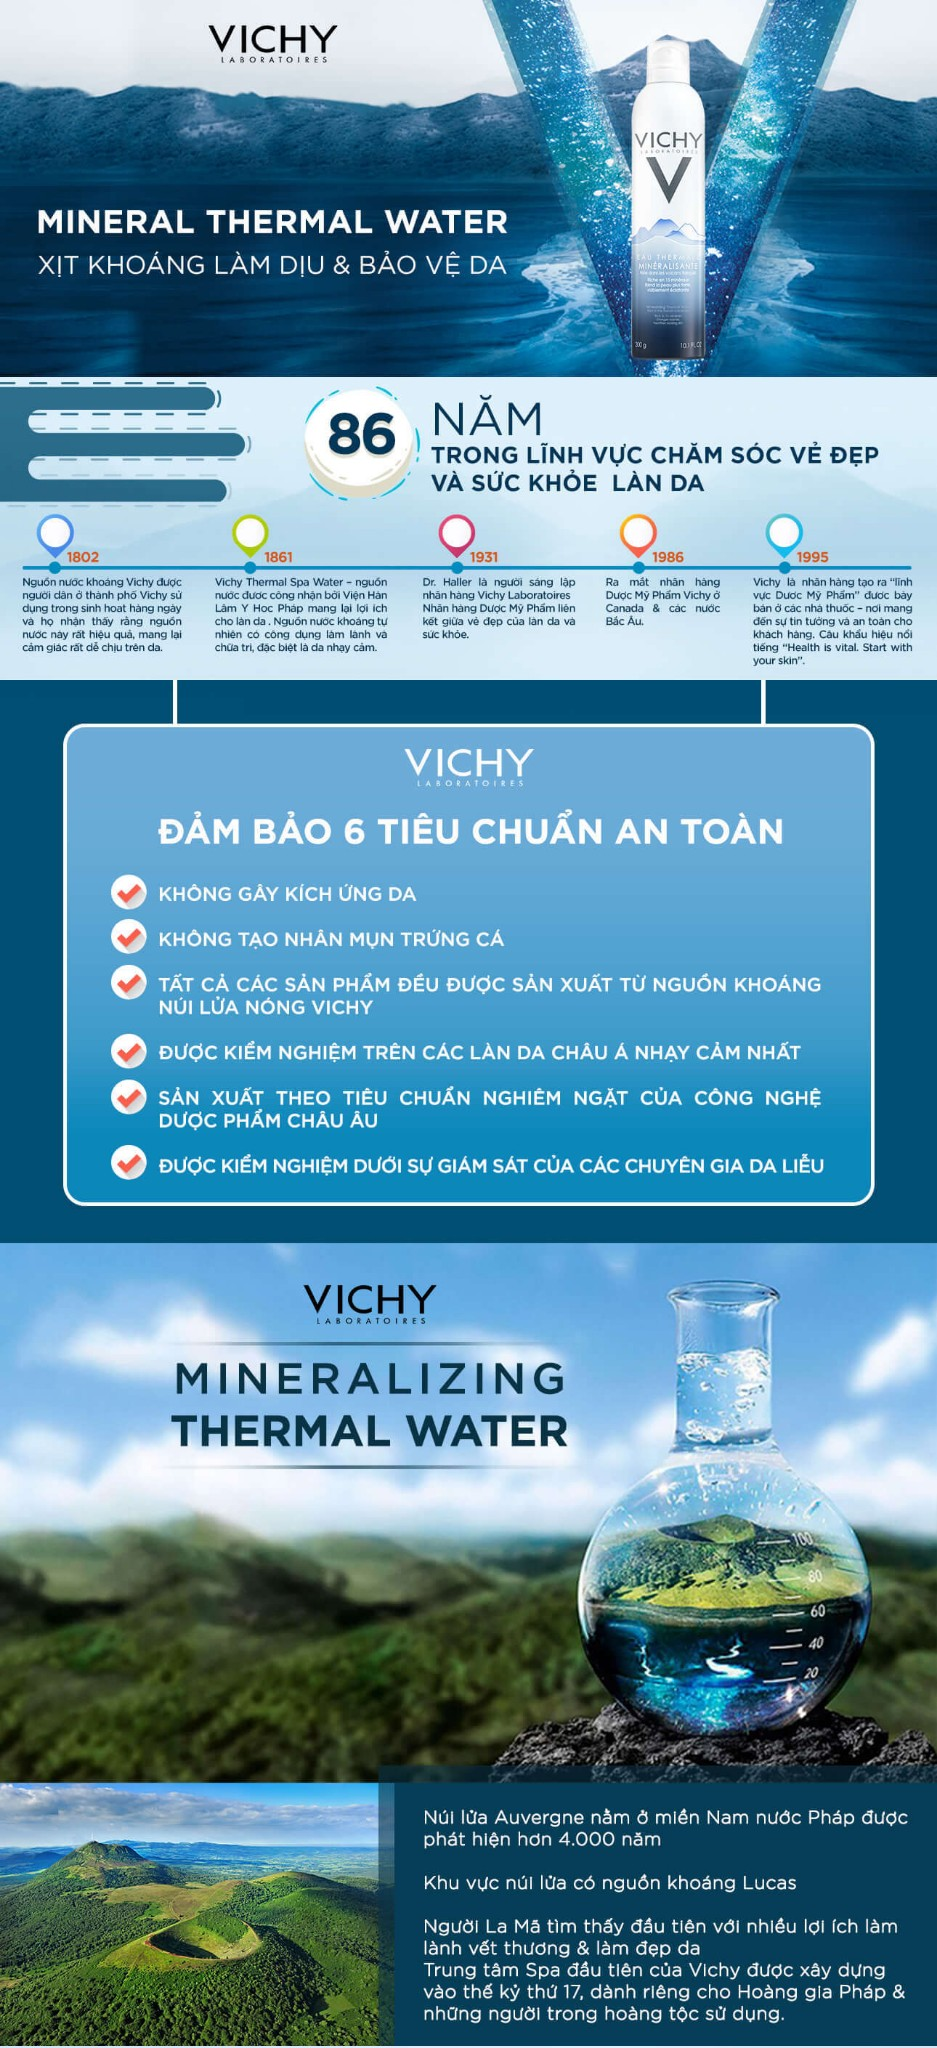 Vichy Mineralizing Thermal Water